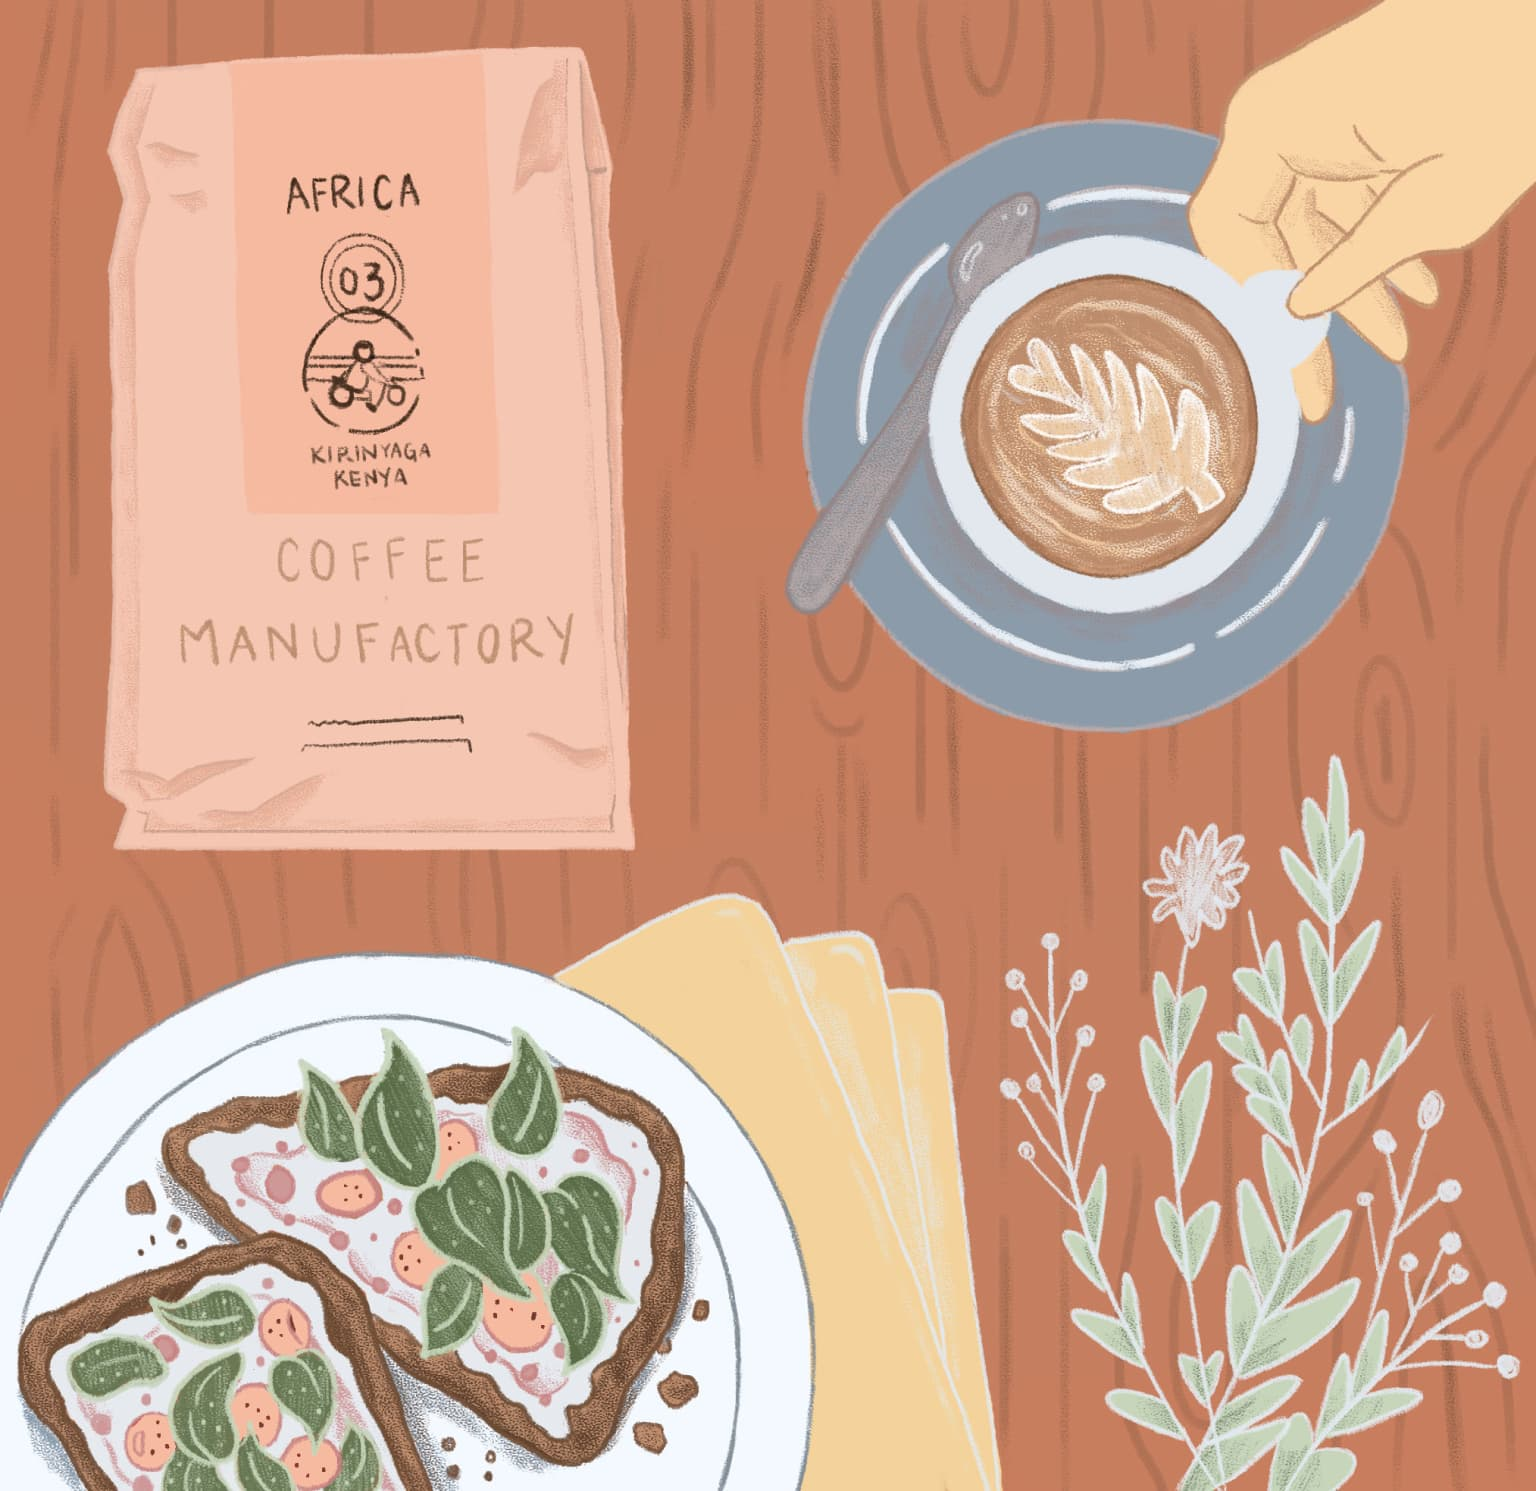 Coffee Illustrations for Coffee Manufactory